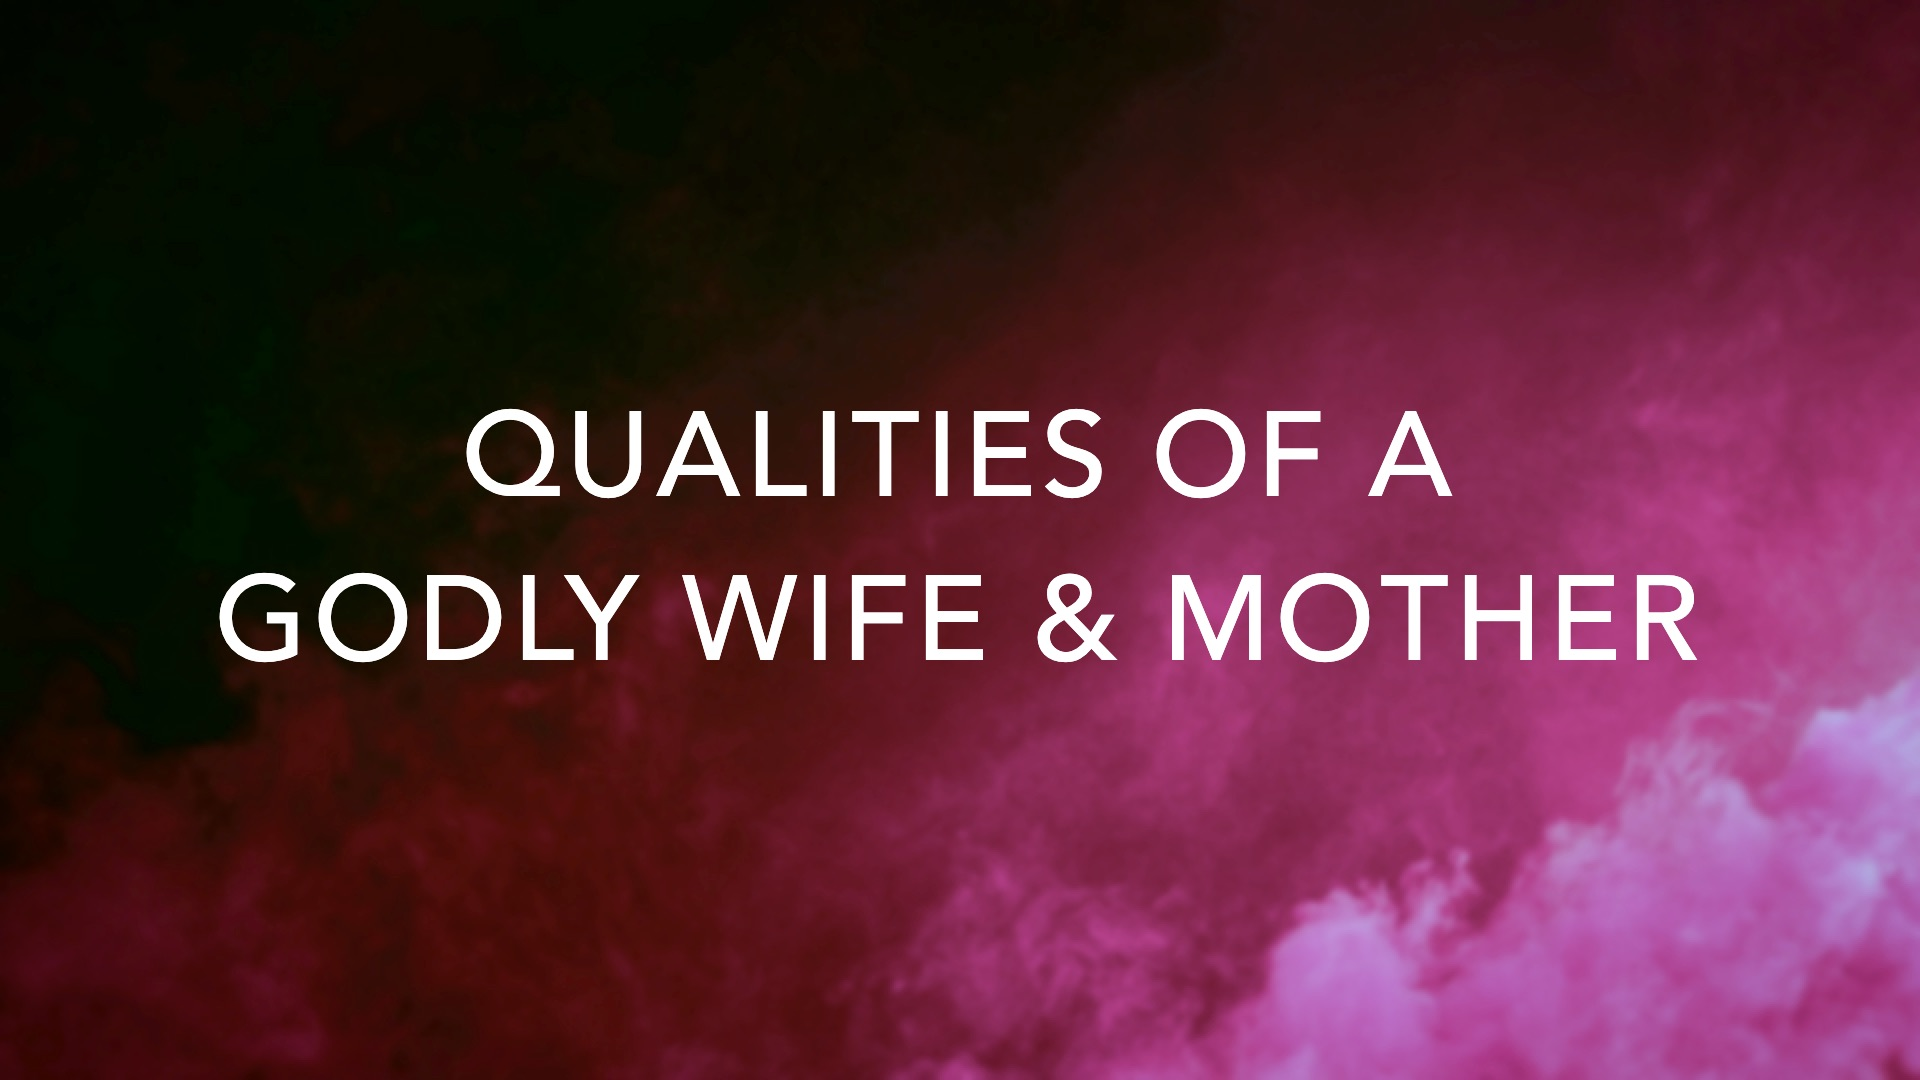 Qualities of a Godly Wife and Mother